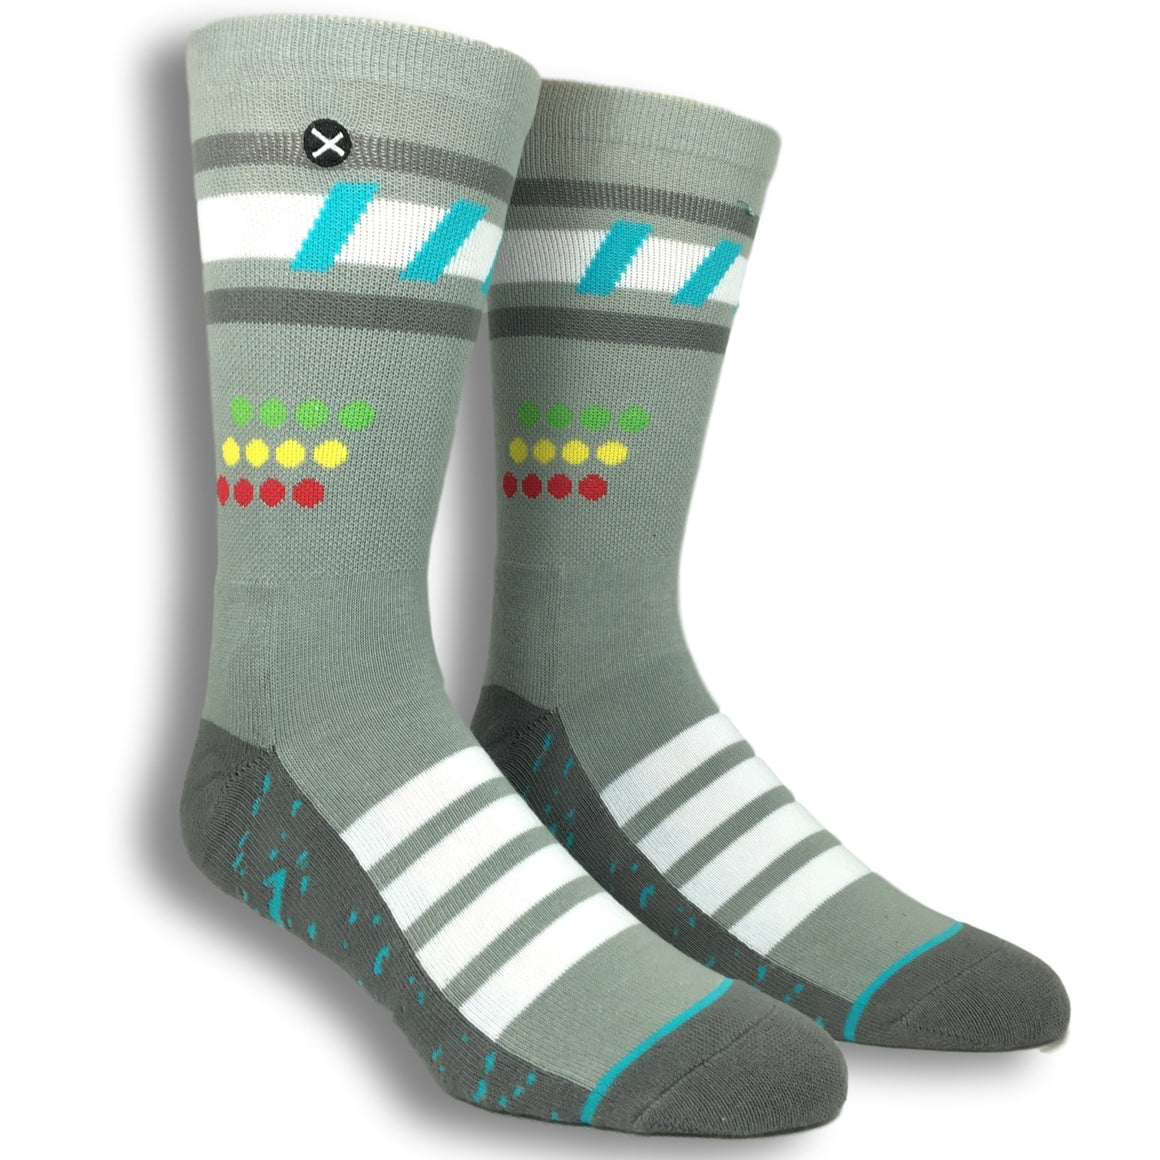 Future Socks by Odd Sox - The Sock Spot